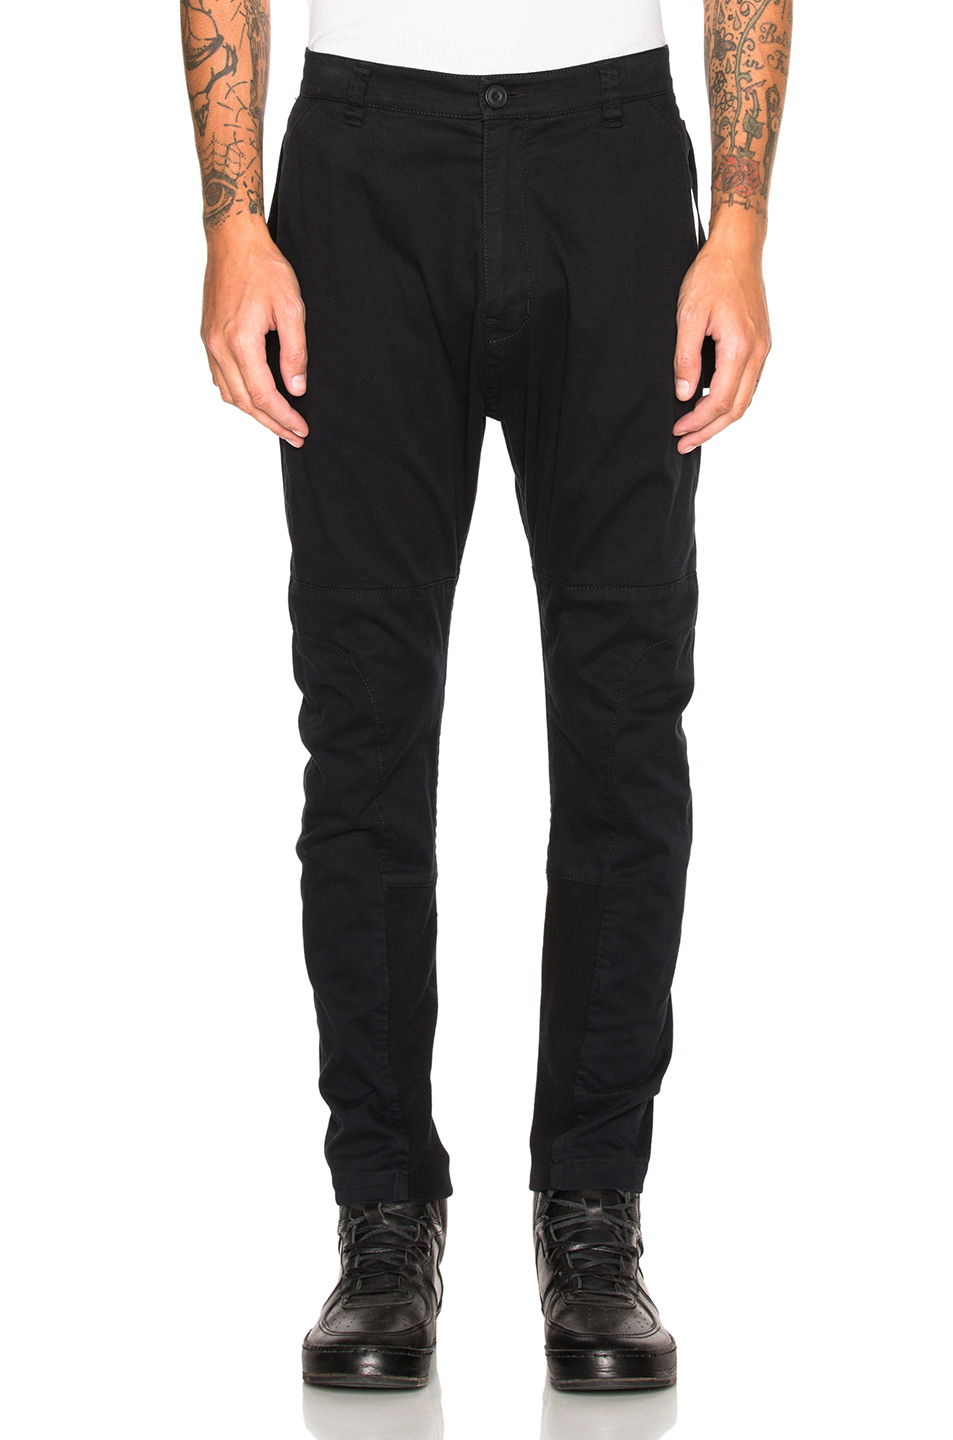 Helmut Lang Back Strap Trousers in Black